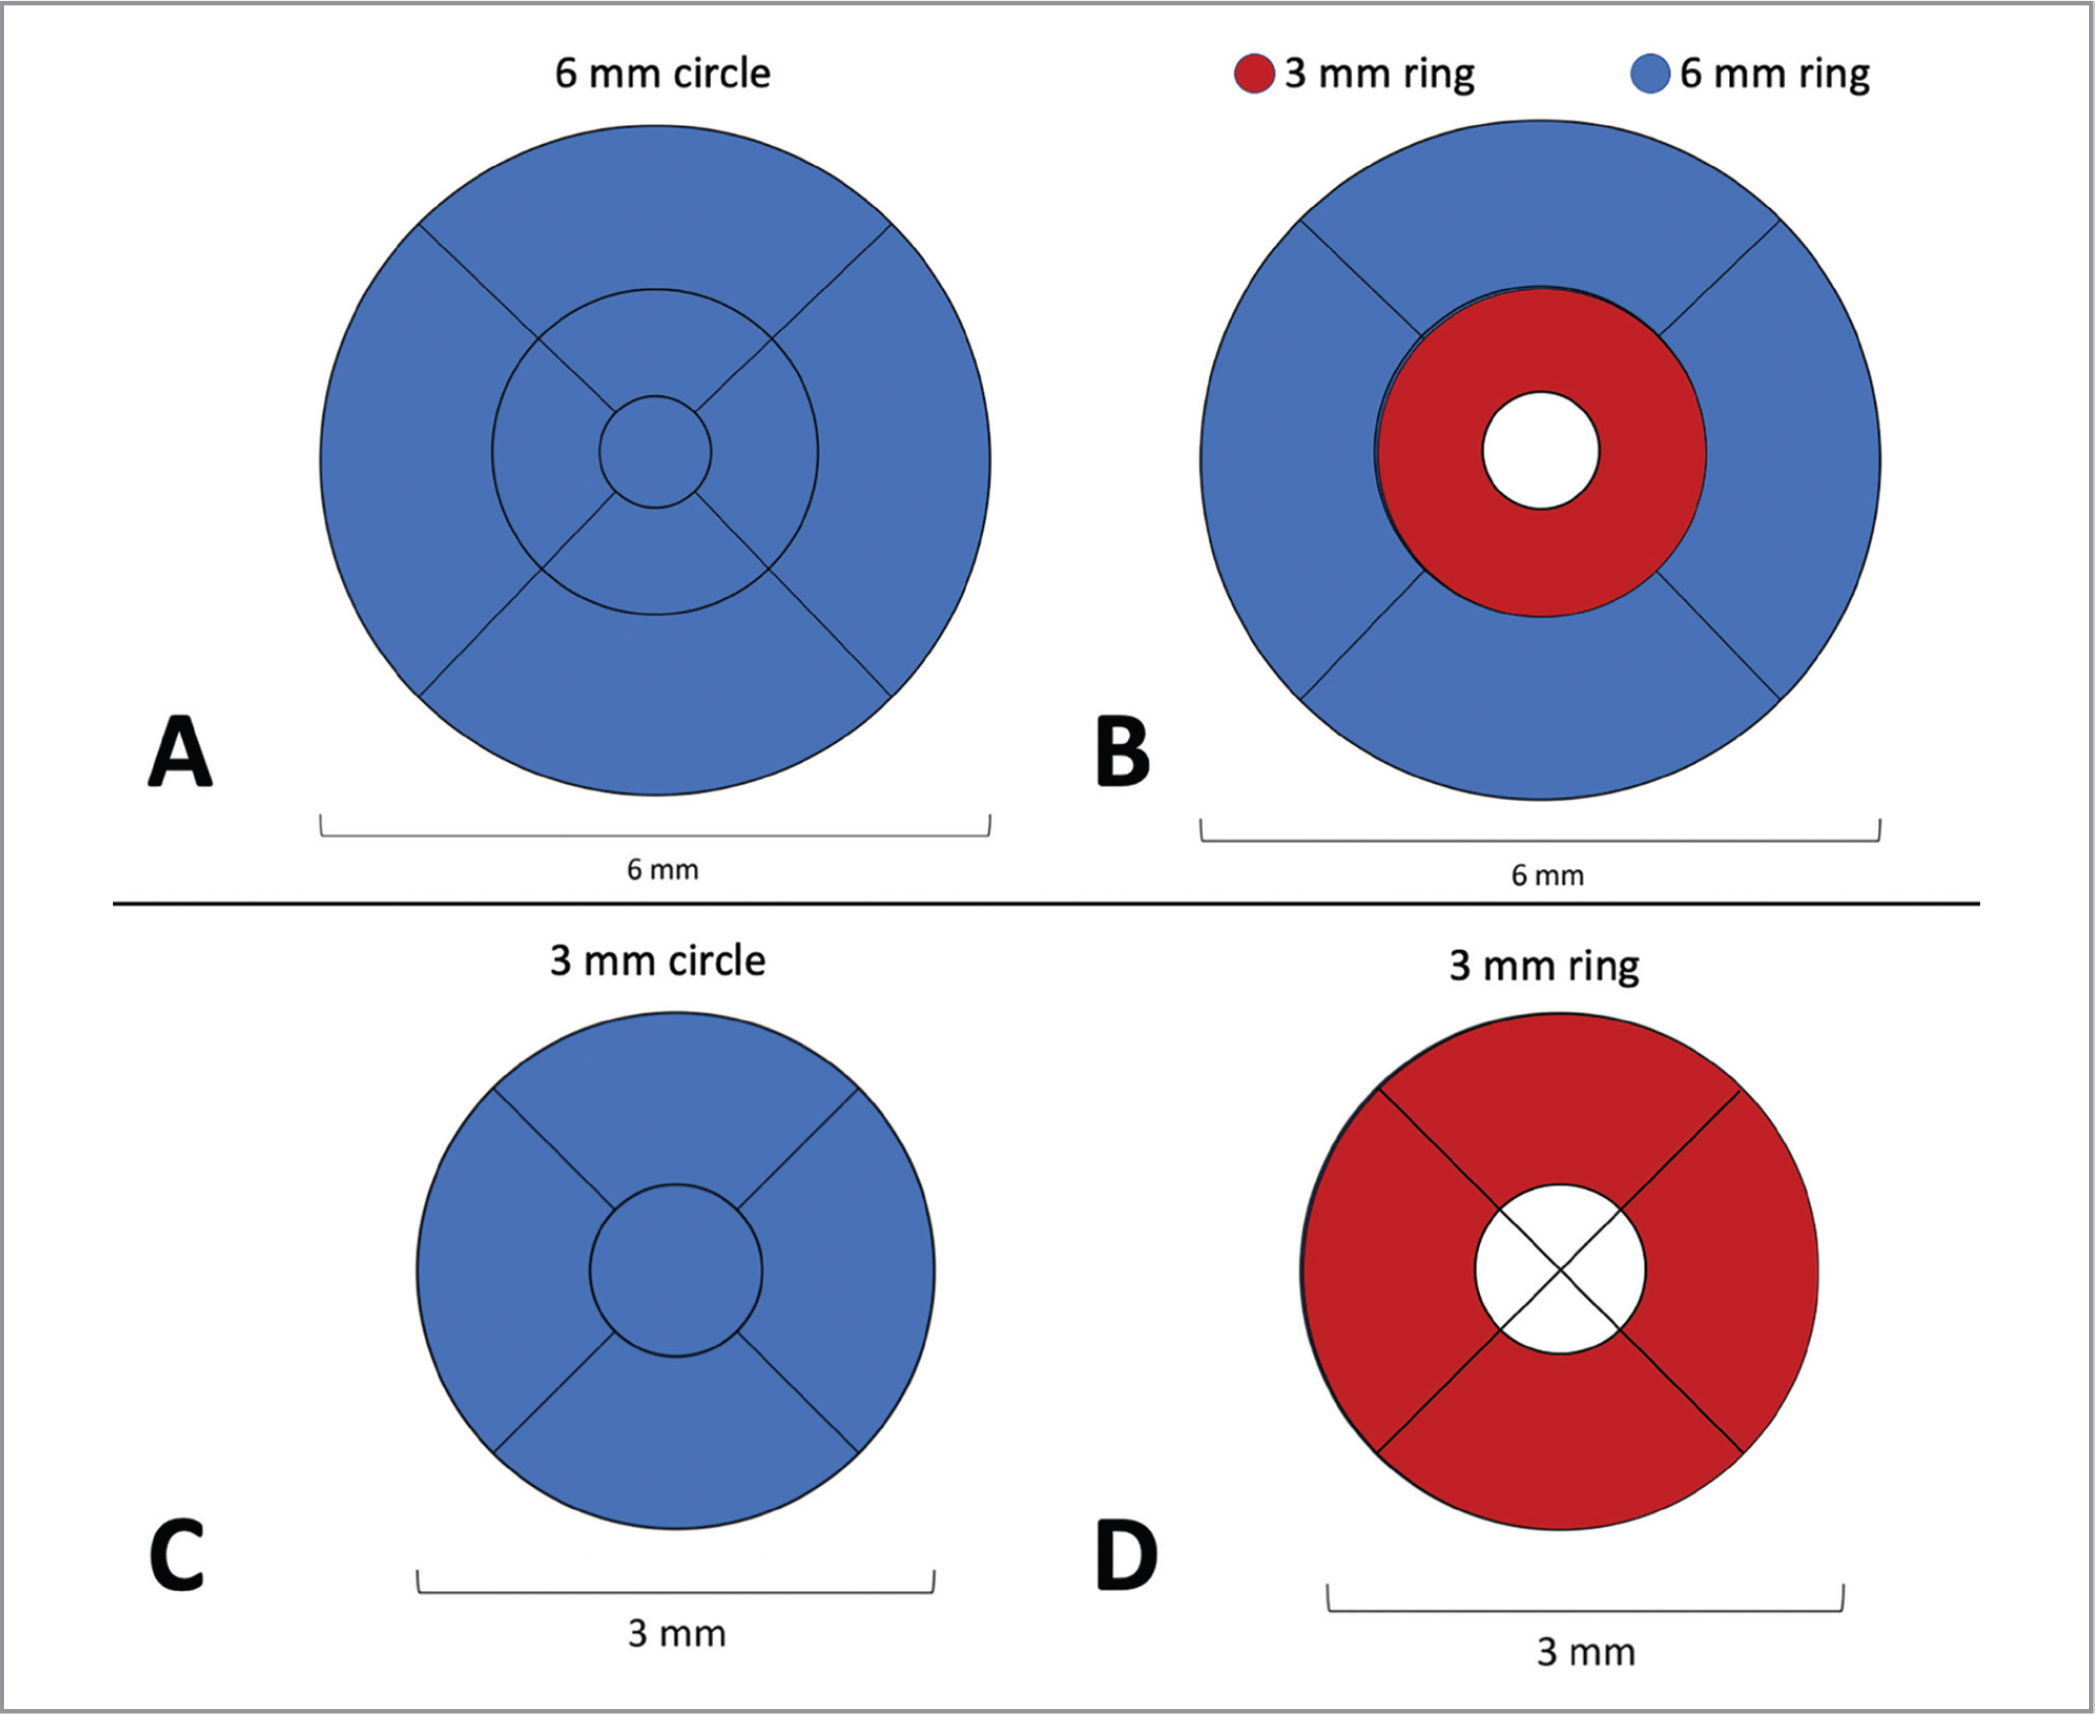 Diagram showing the Early Treatment Diabetic Retinopathy Study grid region overlay used for calculation of the vessel density (VD) and perfusion density (PD) in the different regions. (A) Representation of a 6 mm × 6 mm optical coherence tomography angiography (OCTA) scan with the area in blue representing the 6-mm circle. (B). Representation of a 6 mm × 6 mm OCTA scan with the area in blue representing the 6-mm ring and the area in red representing the 3-mm ring. (C). Representation of a 3 mm × 3 mm OCTA scan with the area in blue representing the 3-mm circle. (D). Representation of a 3 mm × 3 mm OCTA scan with the area in red representing the 3-mm ring. VD and PD values for each respective region were calculated by averaging values over the highlighted areas.